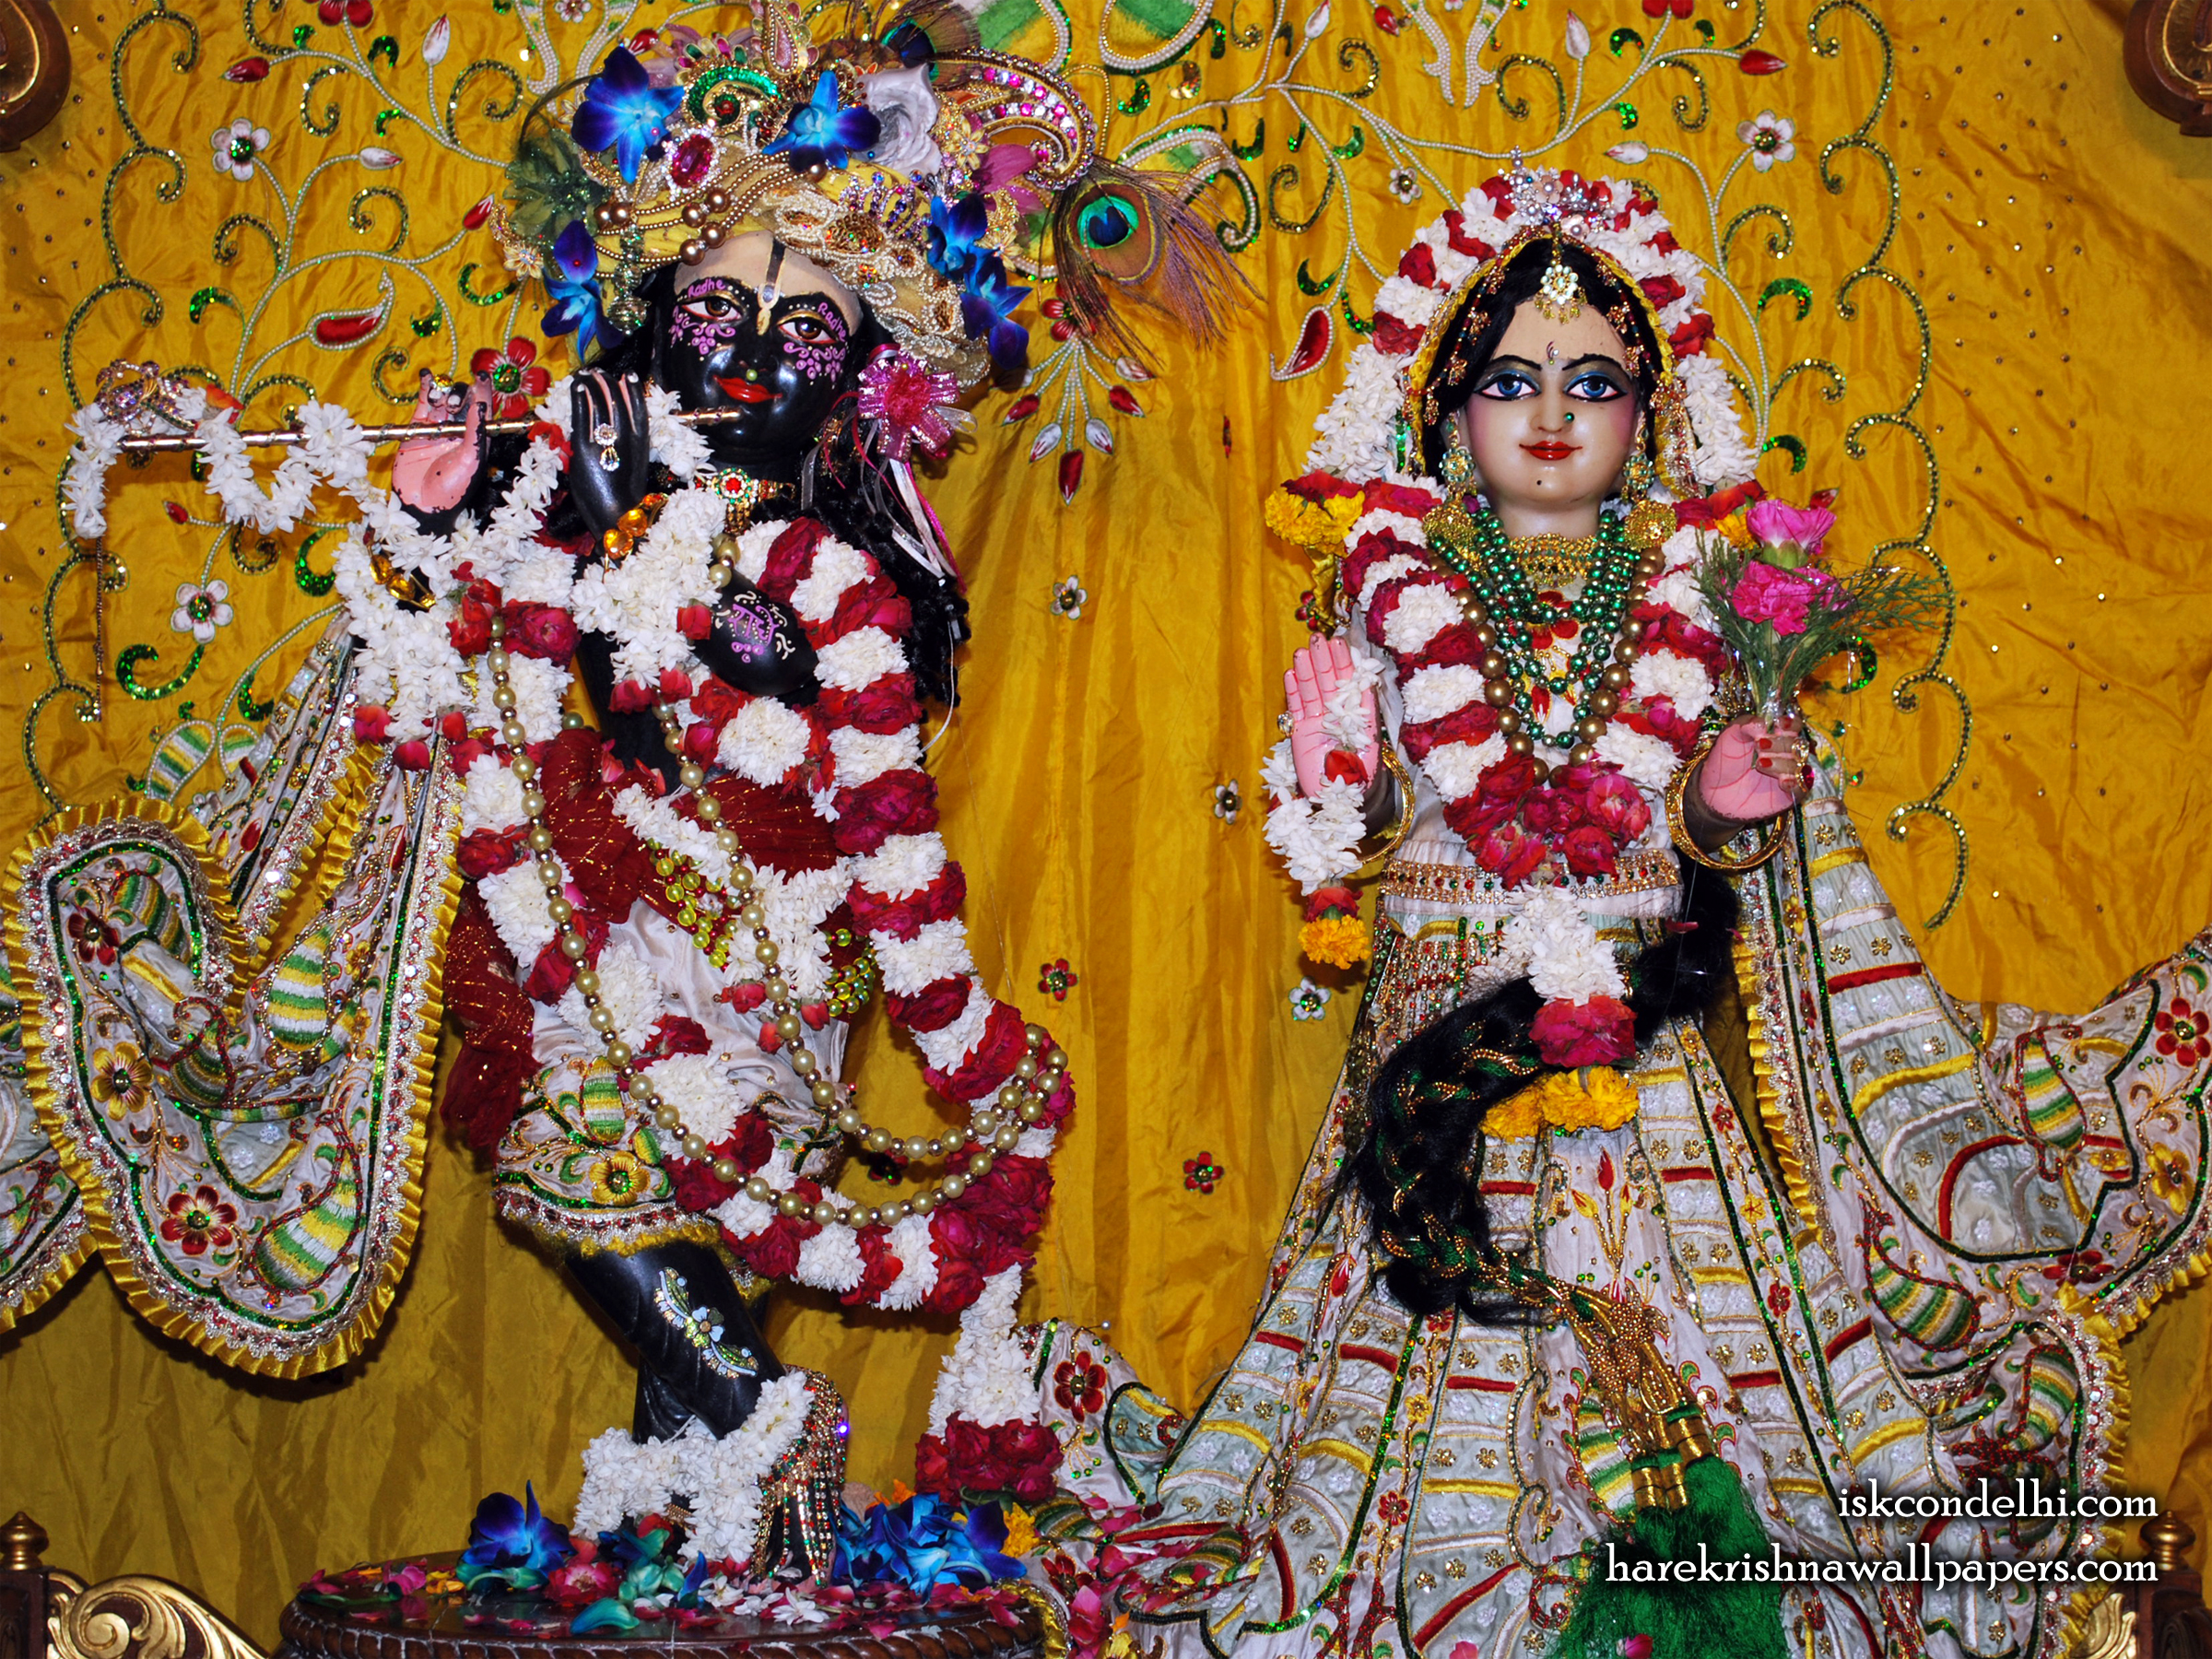 Sri Sri Radha Parthasarathi Wallpaper (010) Size 2400x1800 Download